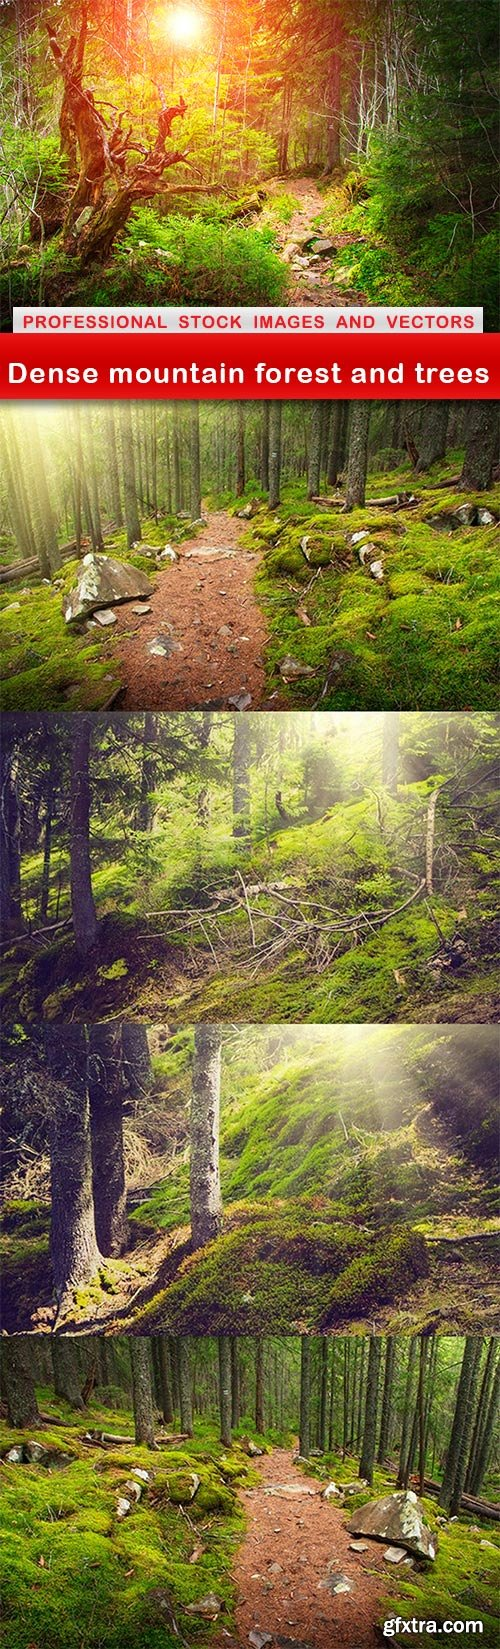 Dense mountain forest and trees - 5 UHQ JPEG